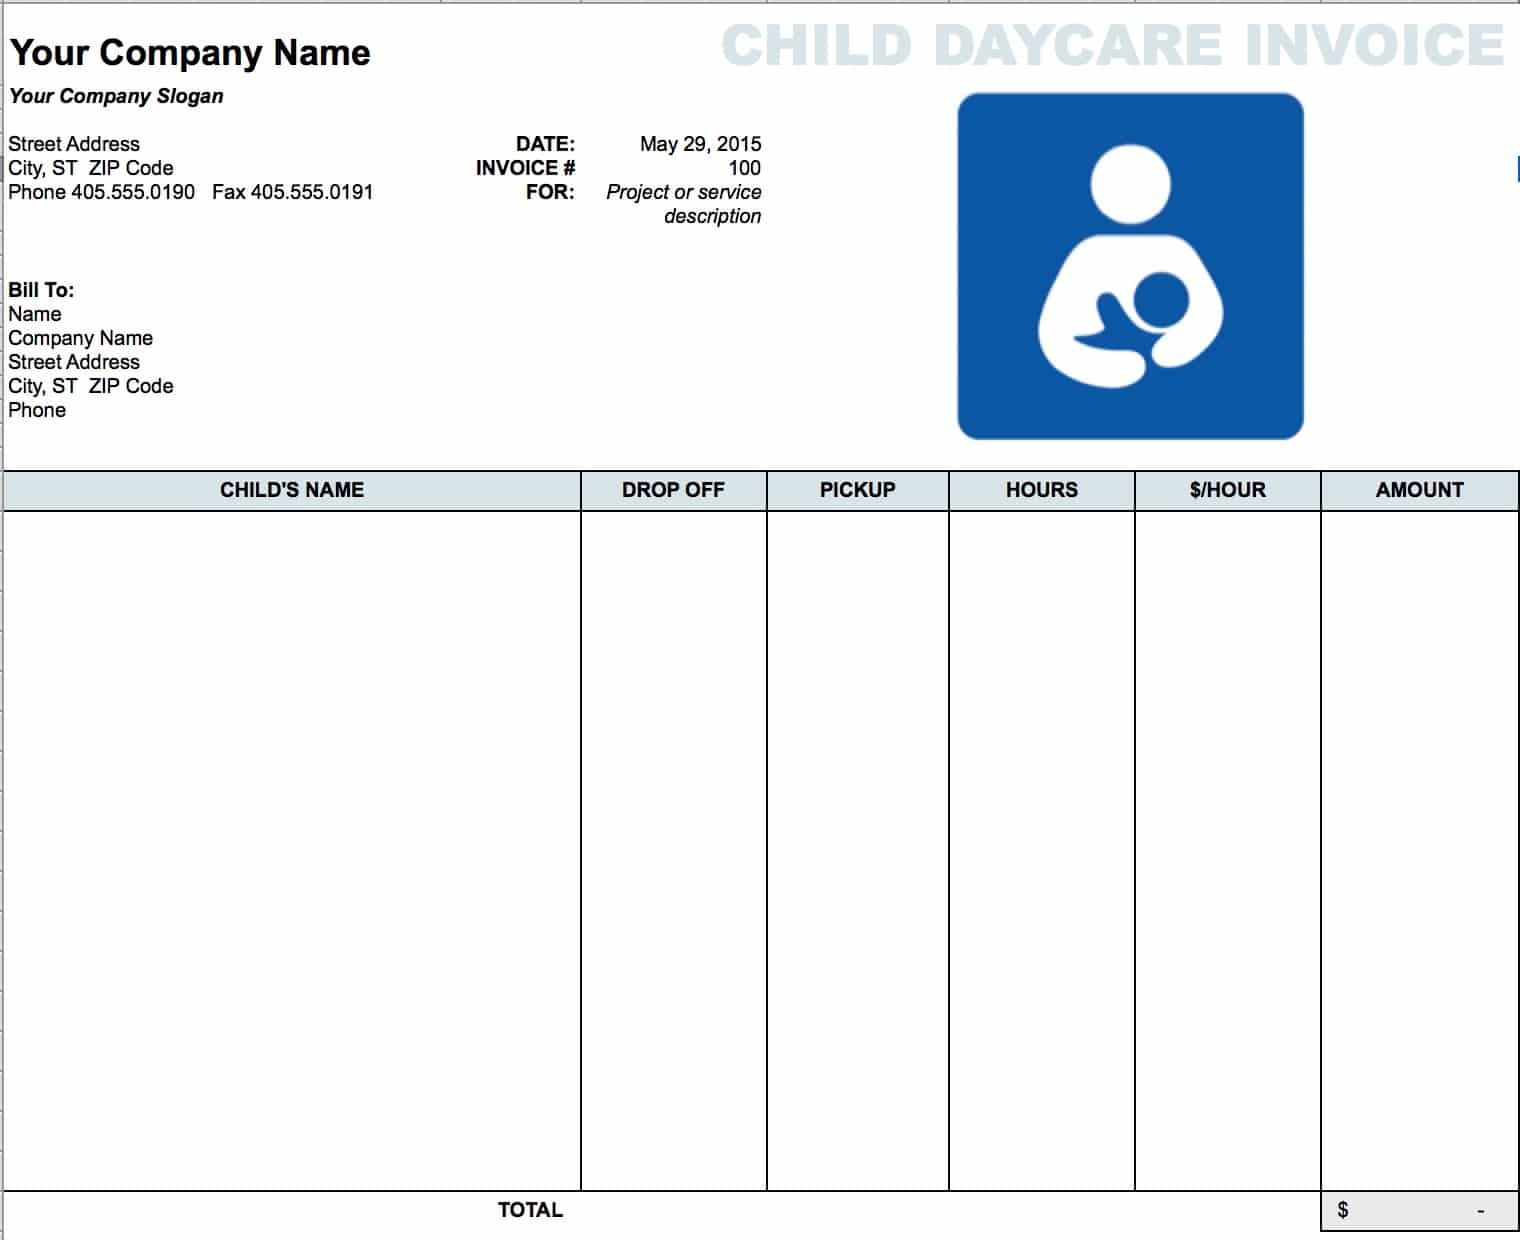 Free Daycare Child Invoice Template Excel PDF Word Doc - Professional invoice template excel for service business